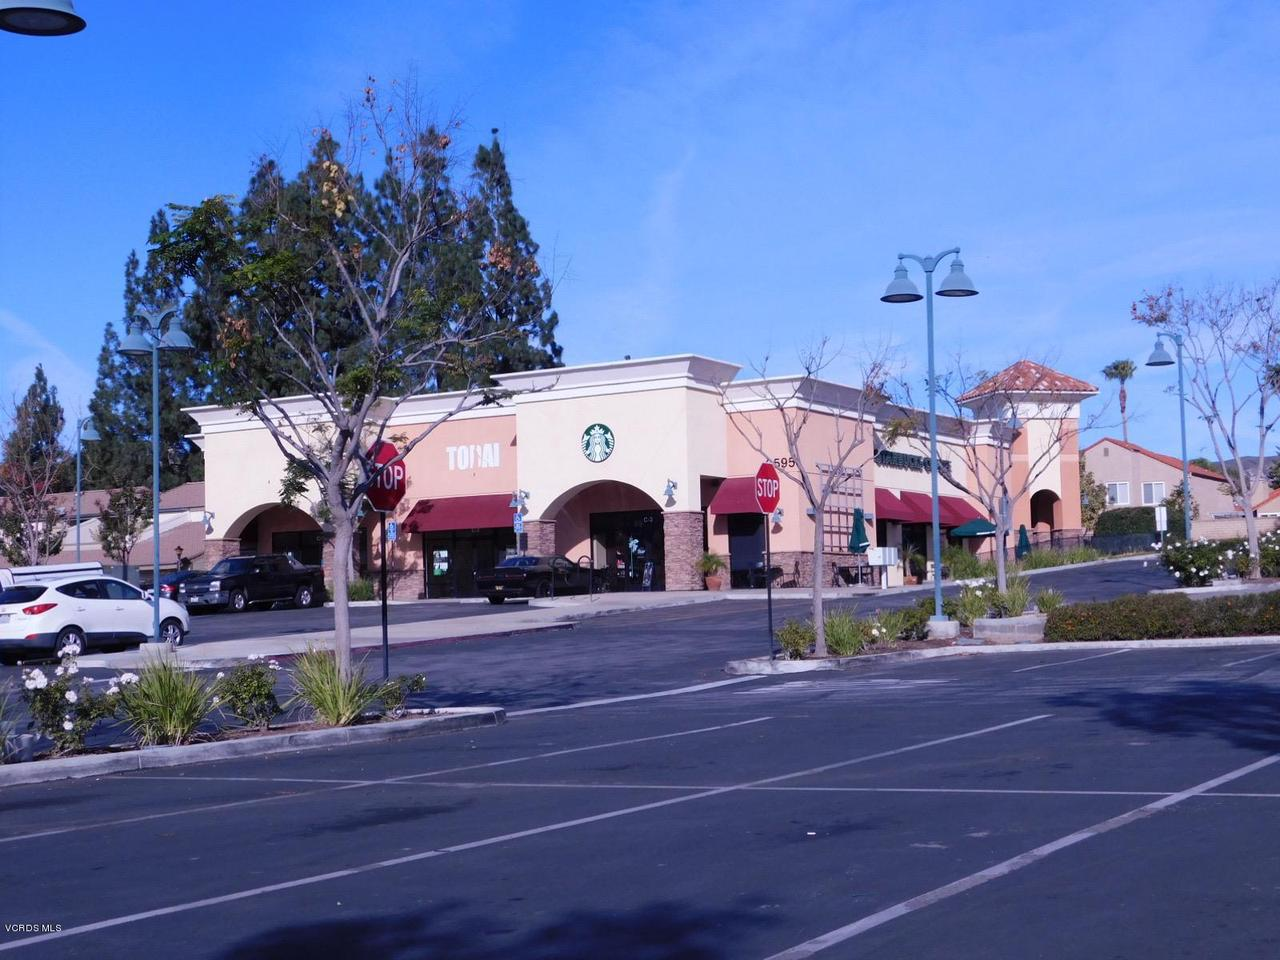 6489 DUKE, Moorpark, CA 93021 - Q_Shopping 2